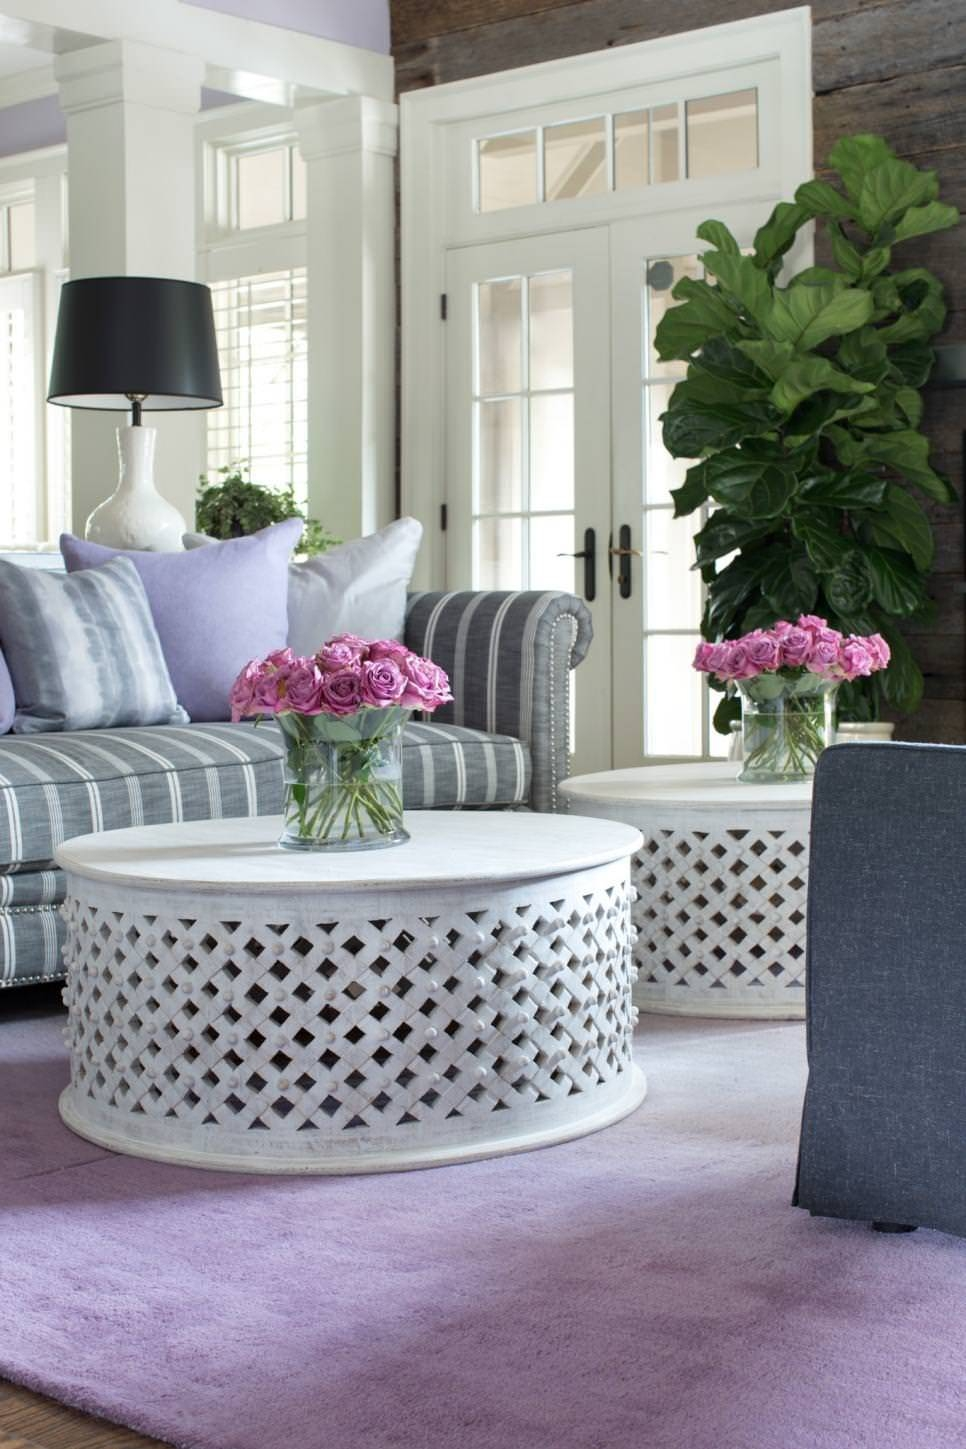 23+ Round Coffee Table Designs, Ideas, Plans | Design Trends pertaining to White Circle Coffee Tables (Image 1 of 30)